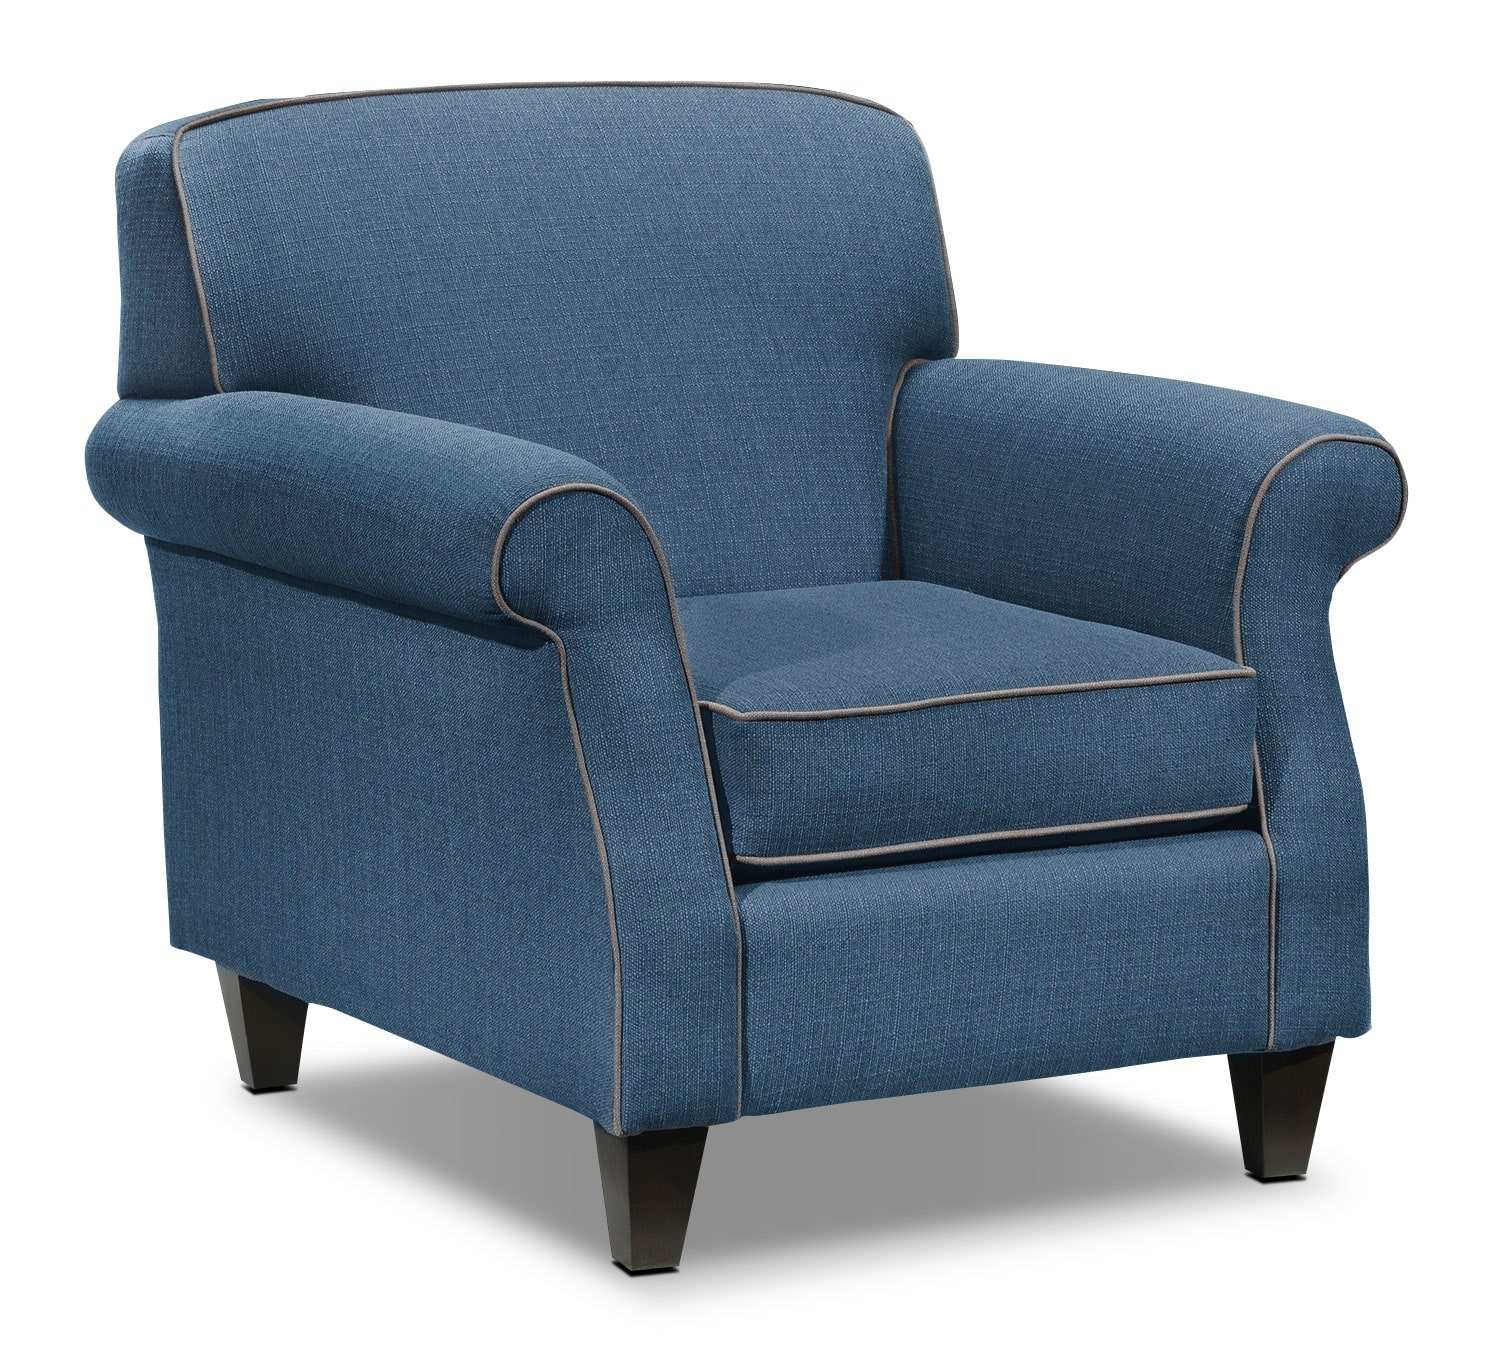 Living Room Furniture - Aristo Chair - Blue